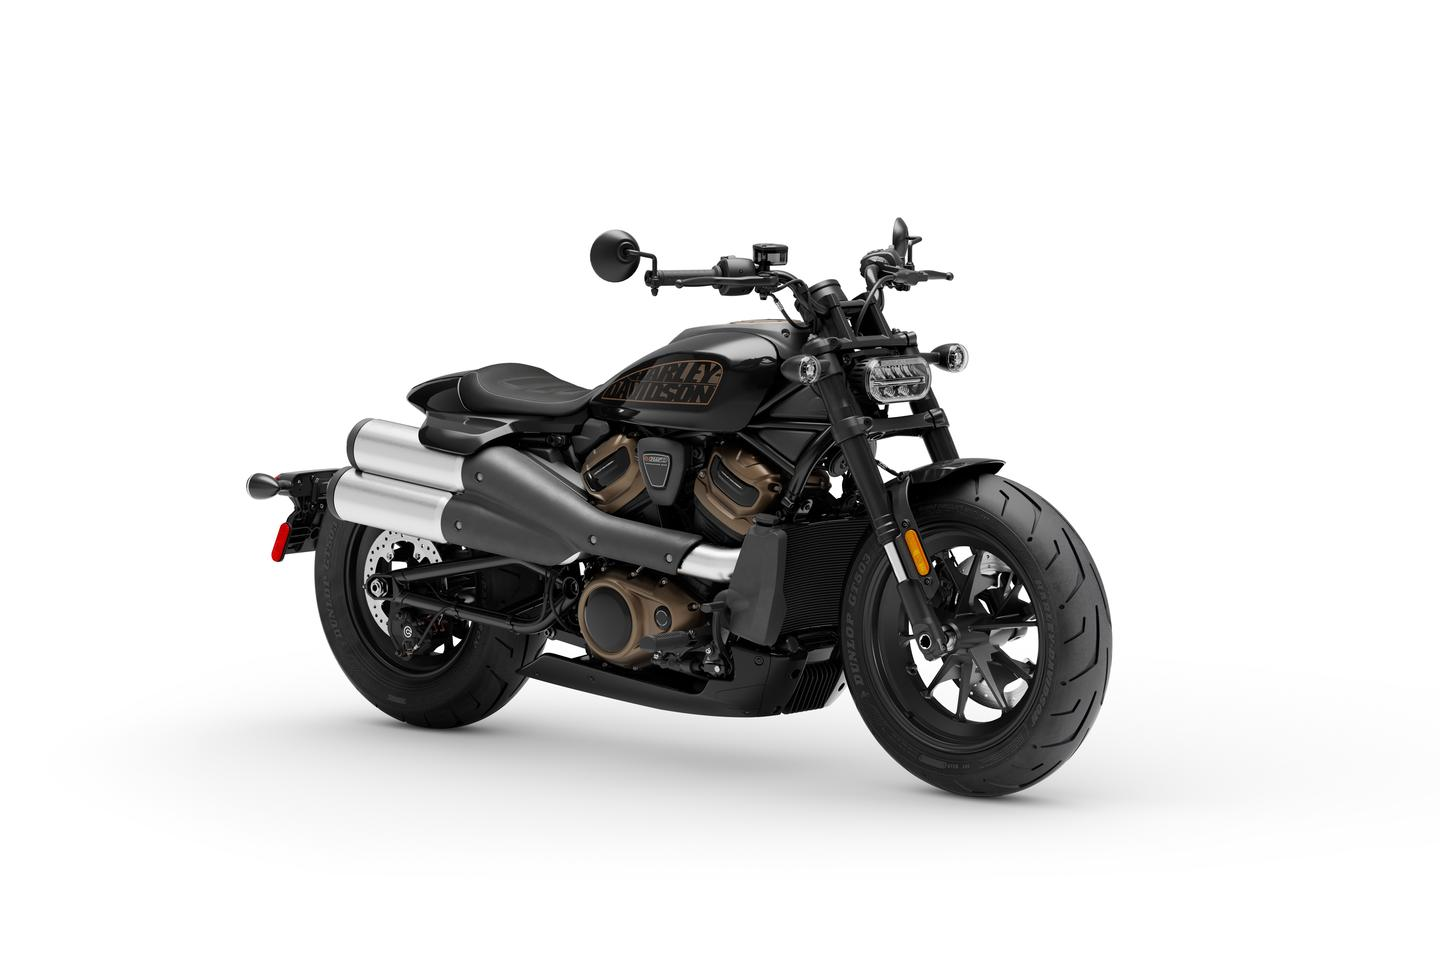 Harley-Davidson has introduced the powerful and highly evolved 2022 Sportster S